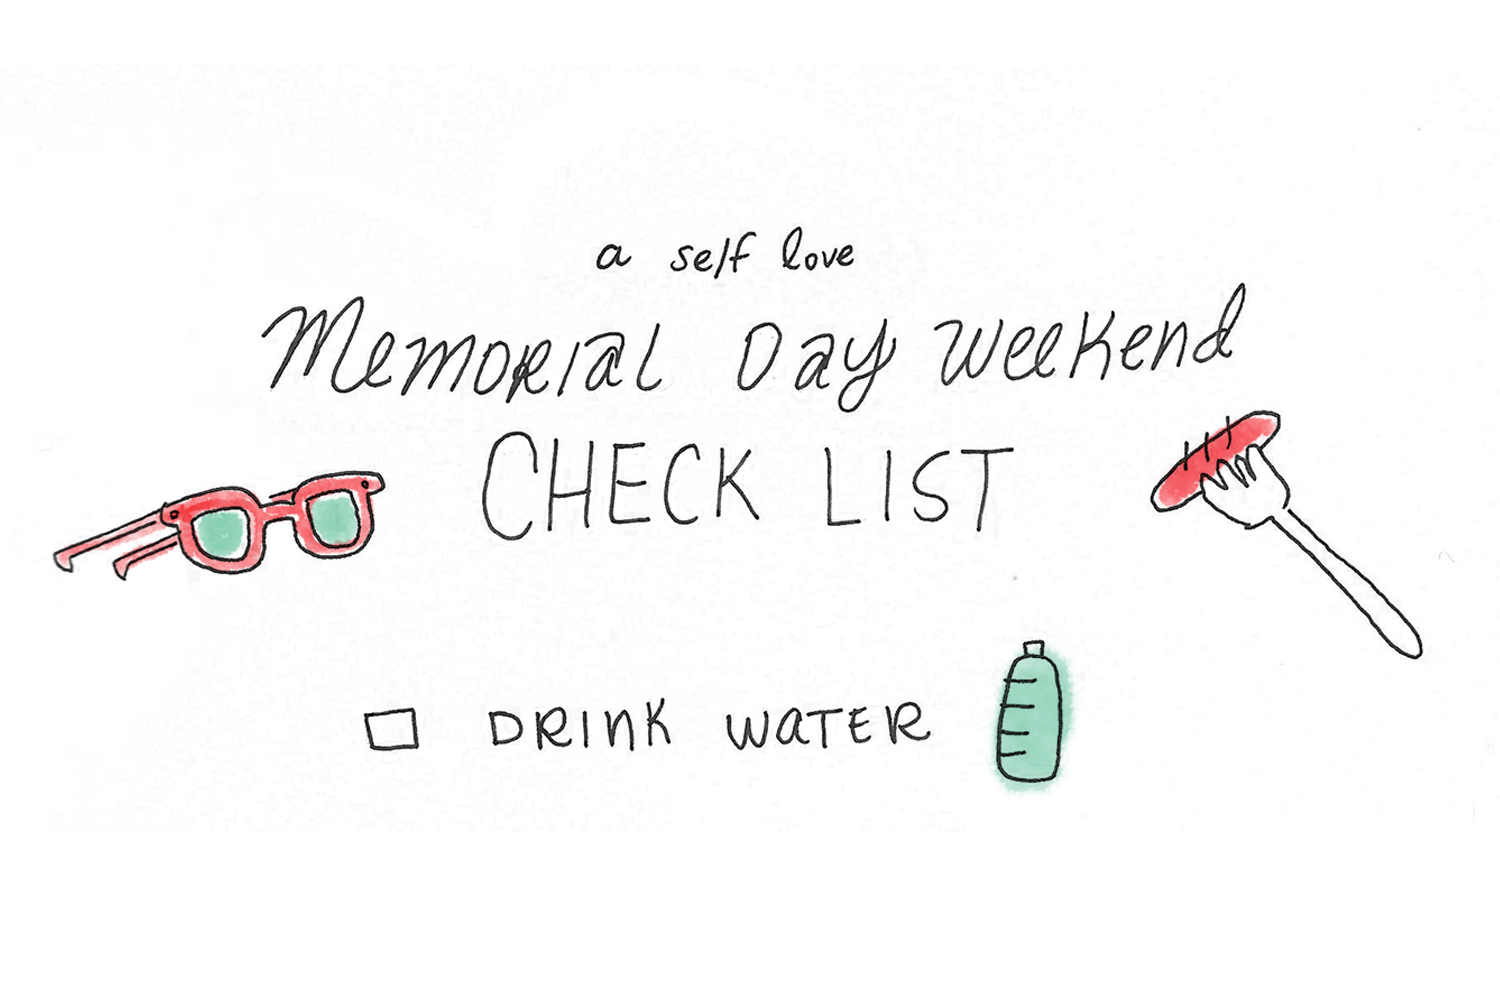 A self-love to-do list for Memorial Day weekend